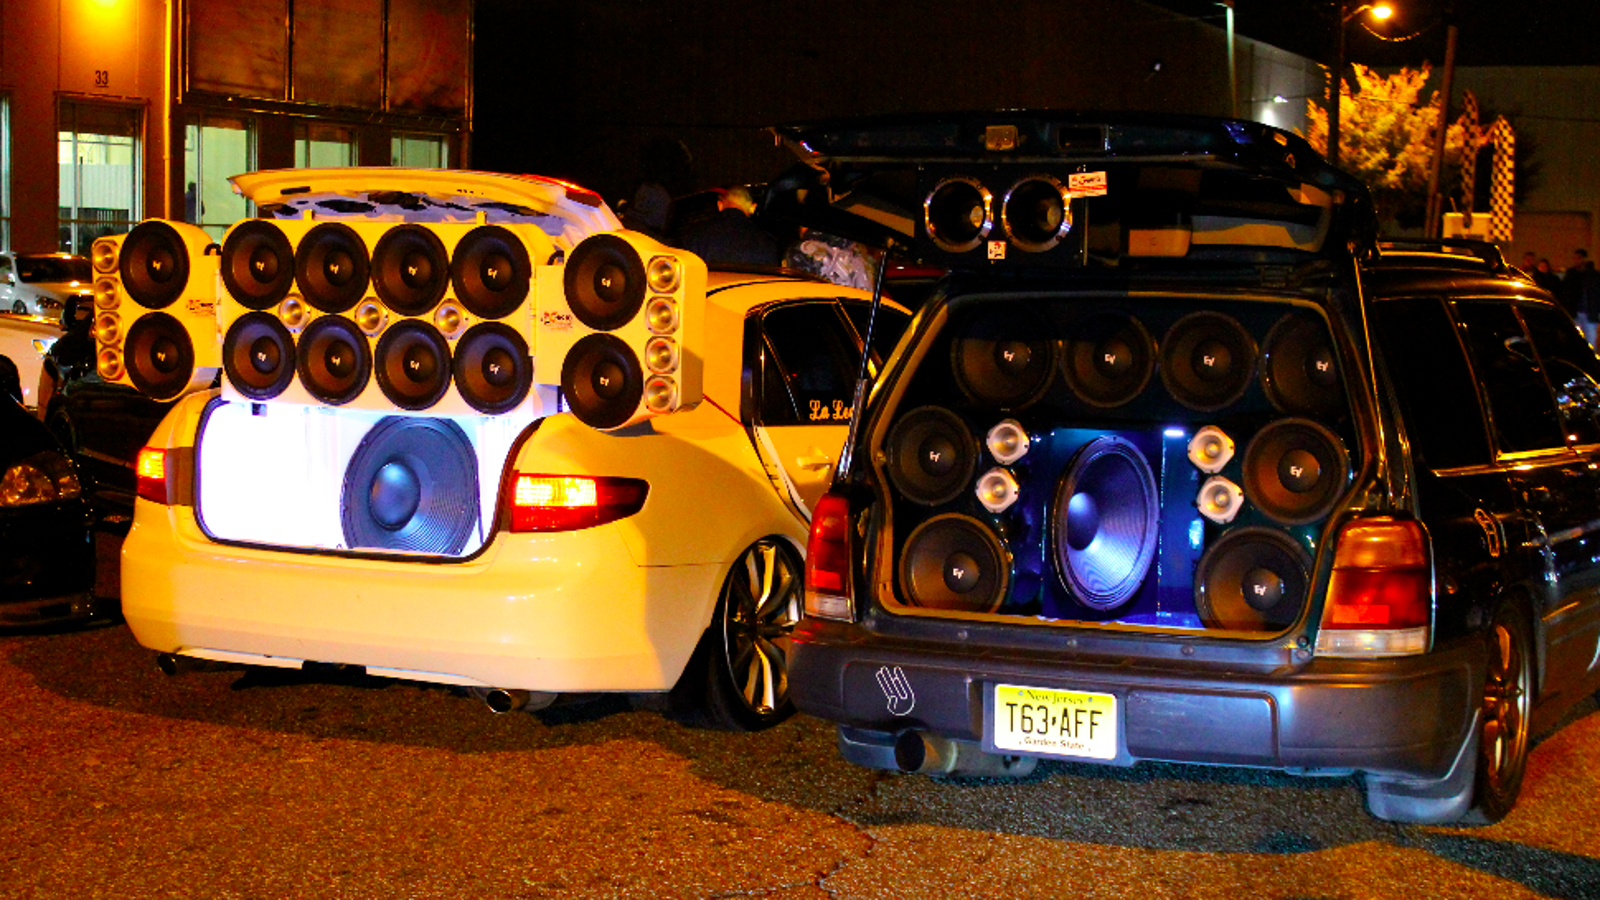 Please Stop Blasting Music From Your Corolla